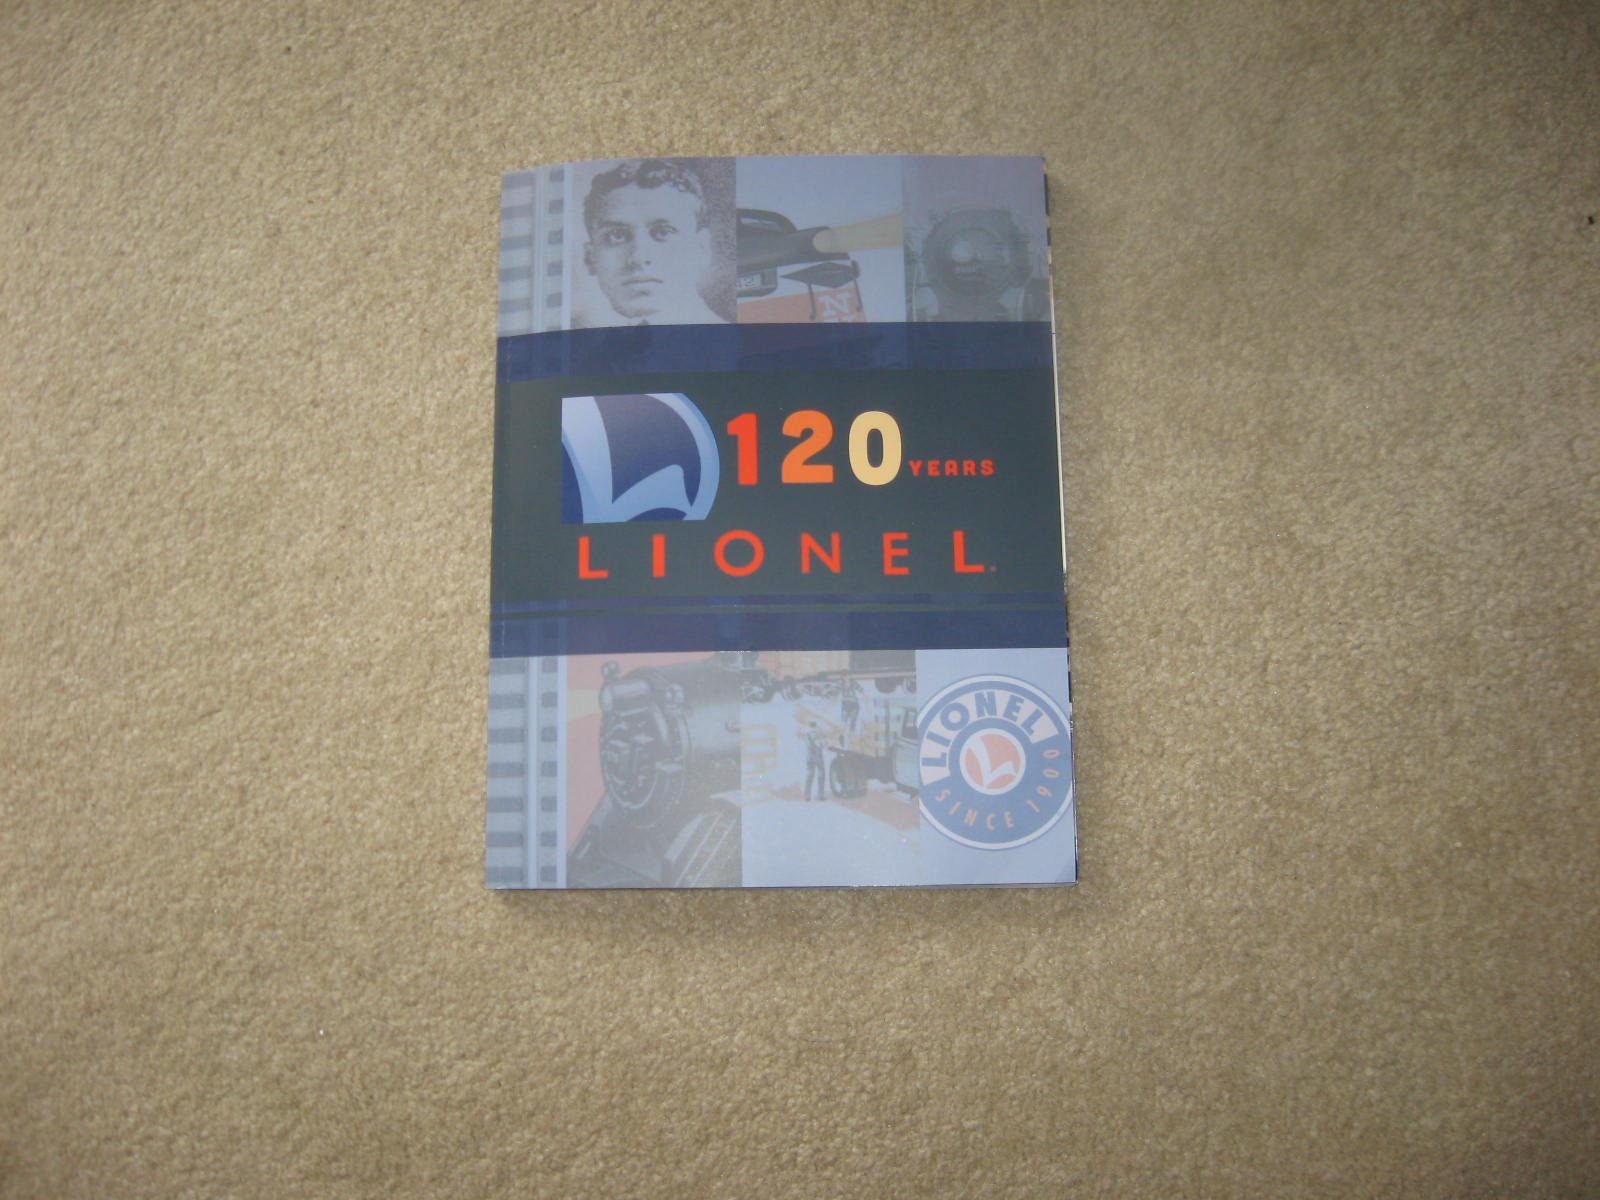 2020 Lionel Trains Consumer Catalog. Mint Condition